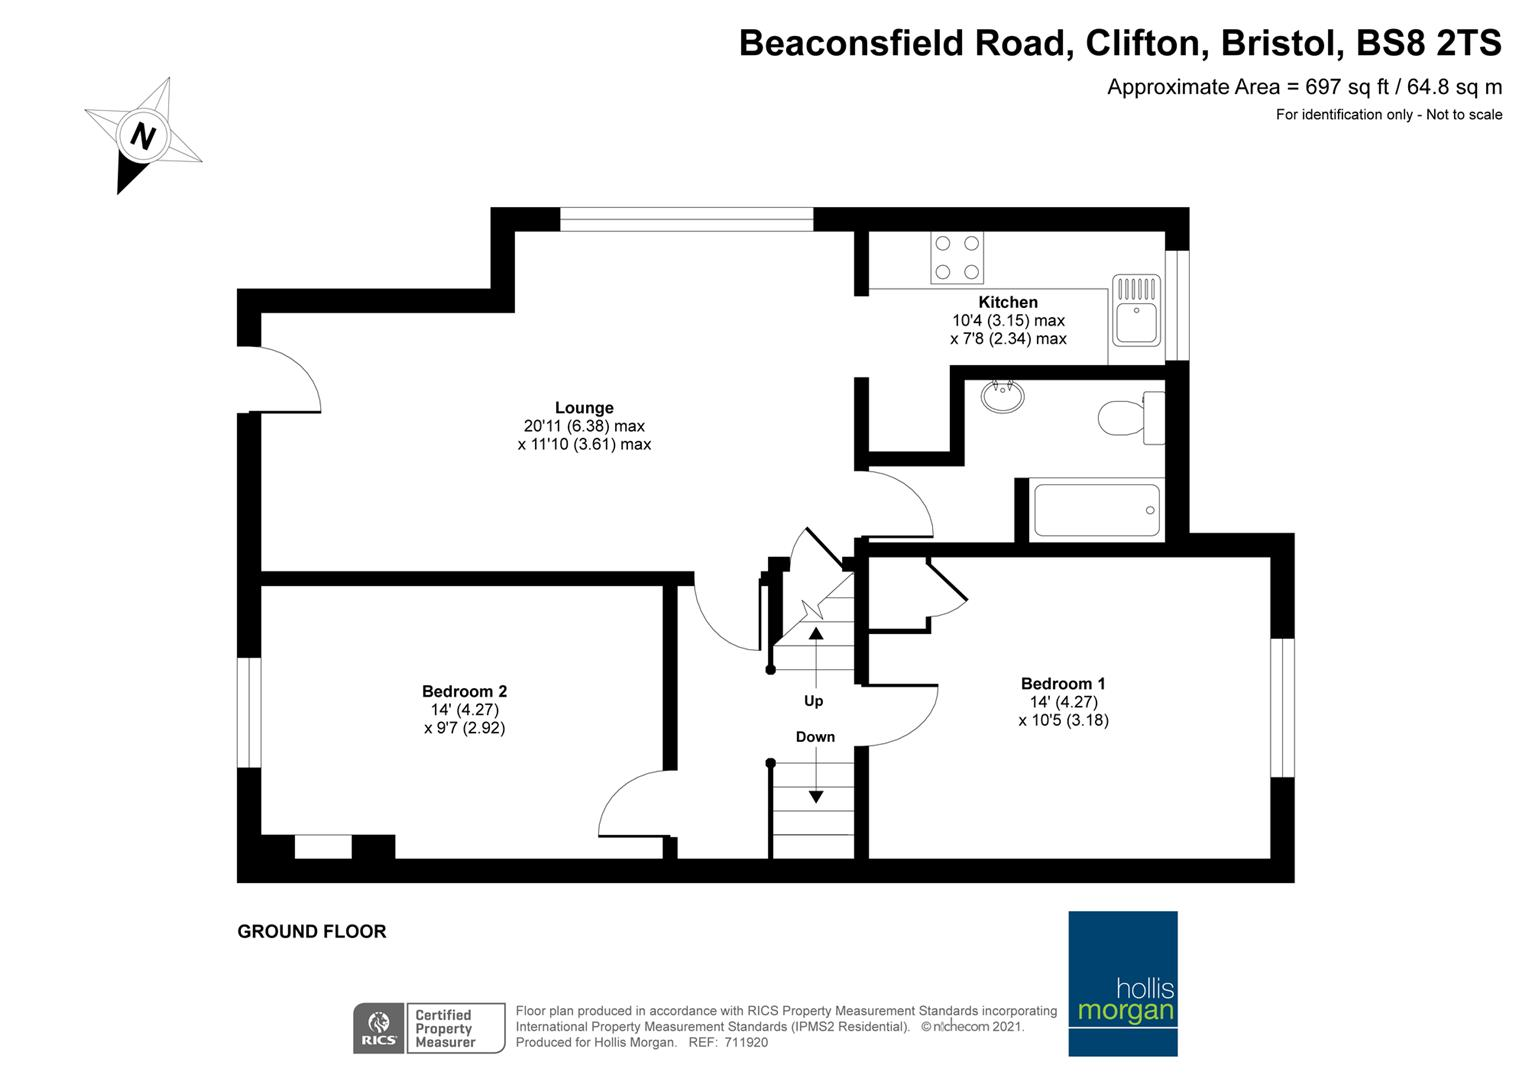 Floorplans For Beaconsfield Road, Clifton